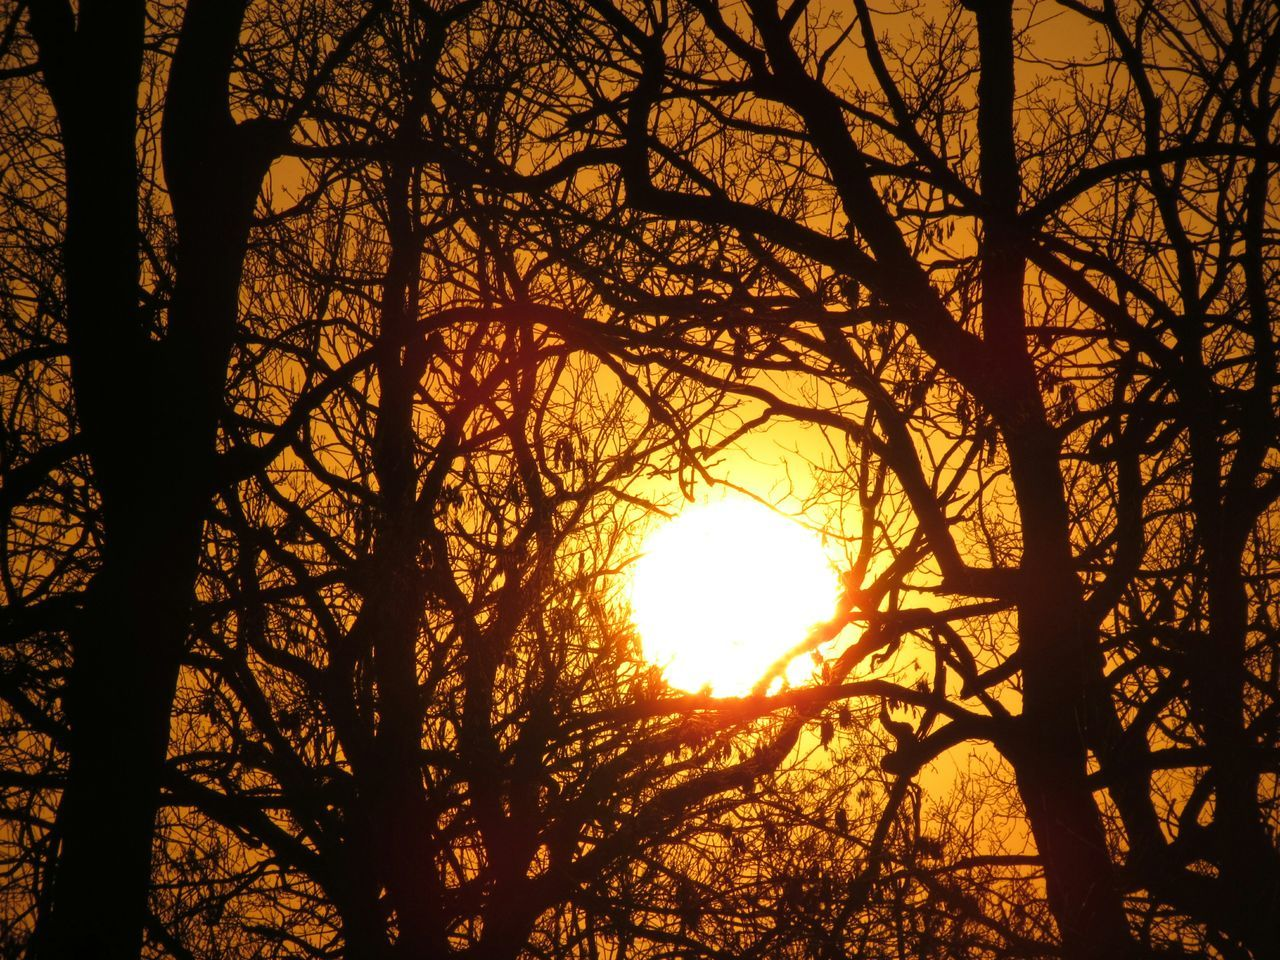 Sun Seen Though Silhouette Bare Trees During Sunset